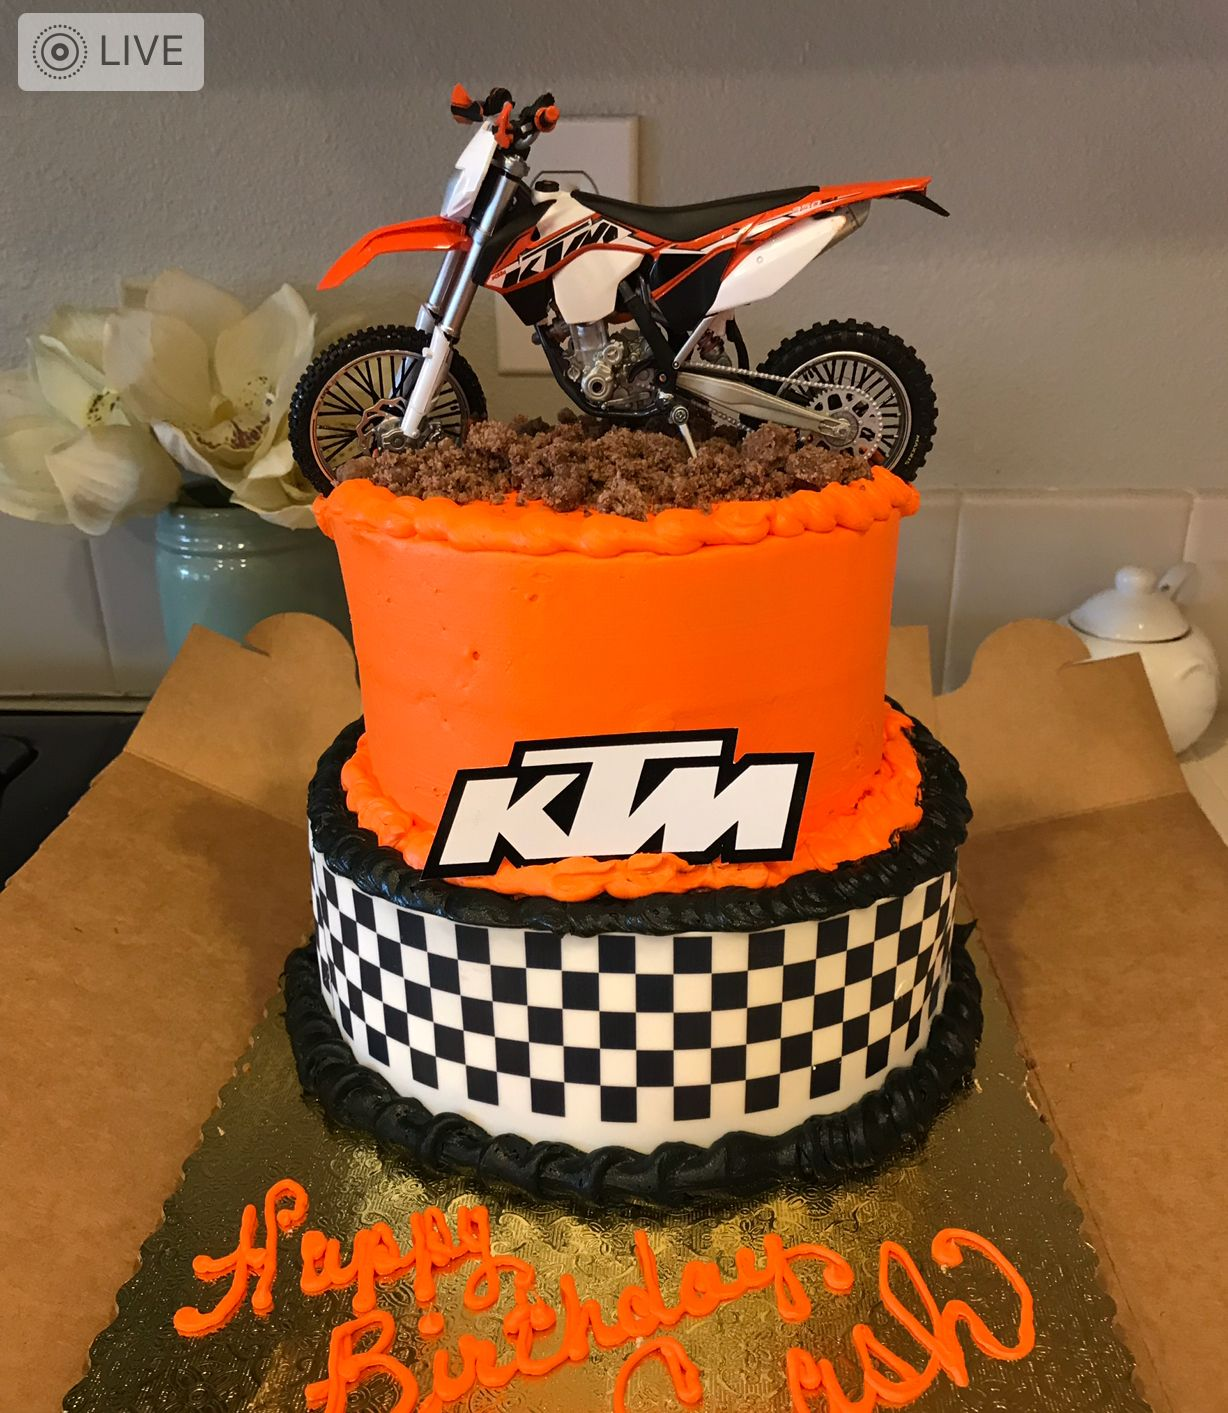 Awe Inspiring Ktm Racing Dirt Bike Birthday Cake With Images Motorcycle Funny Birthday Cards Online Inifofree Goldxyz